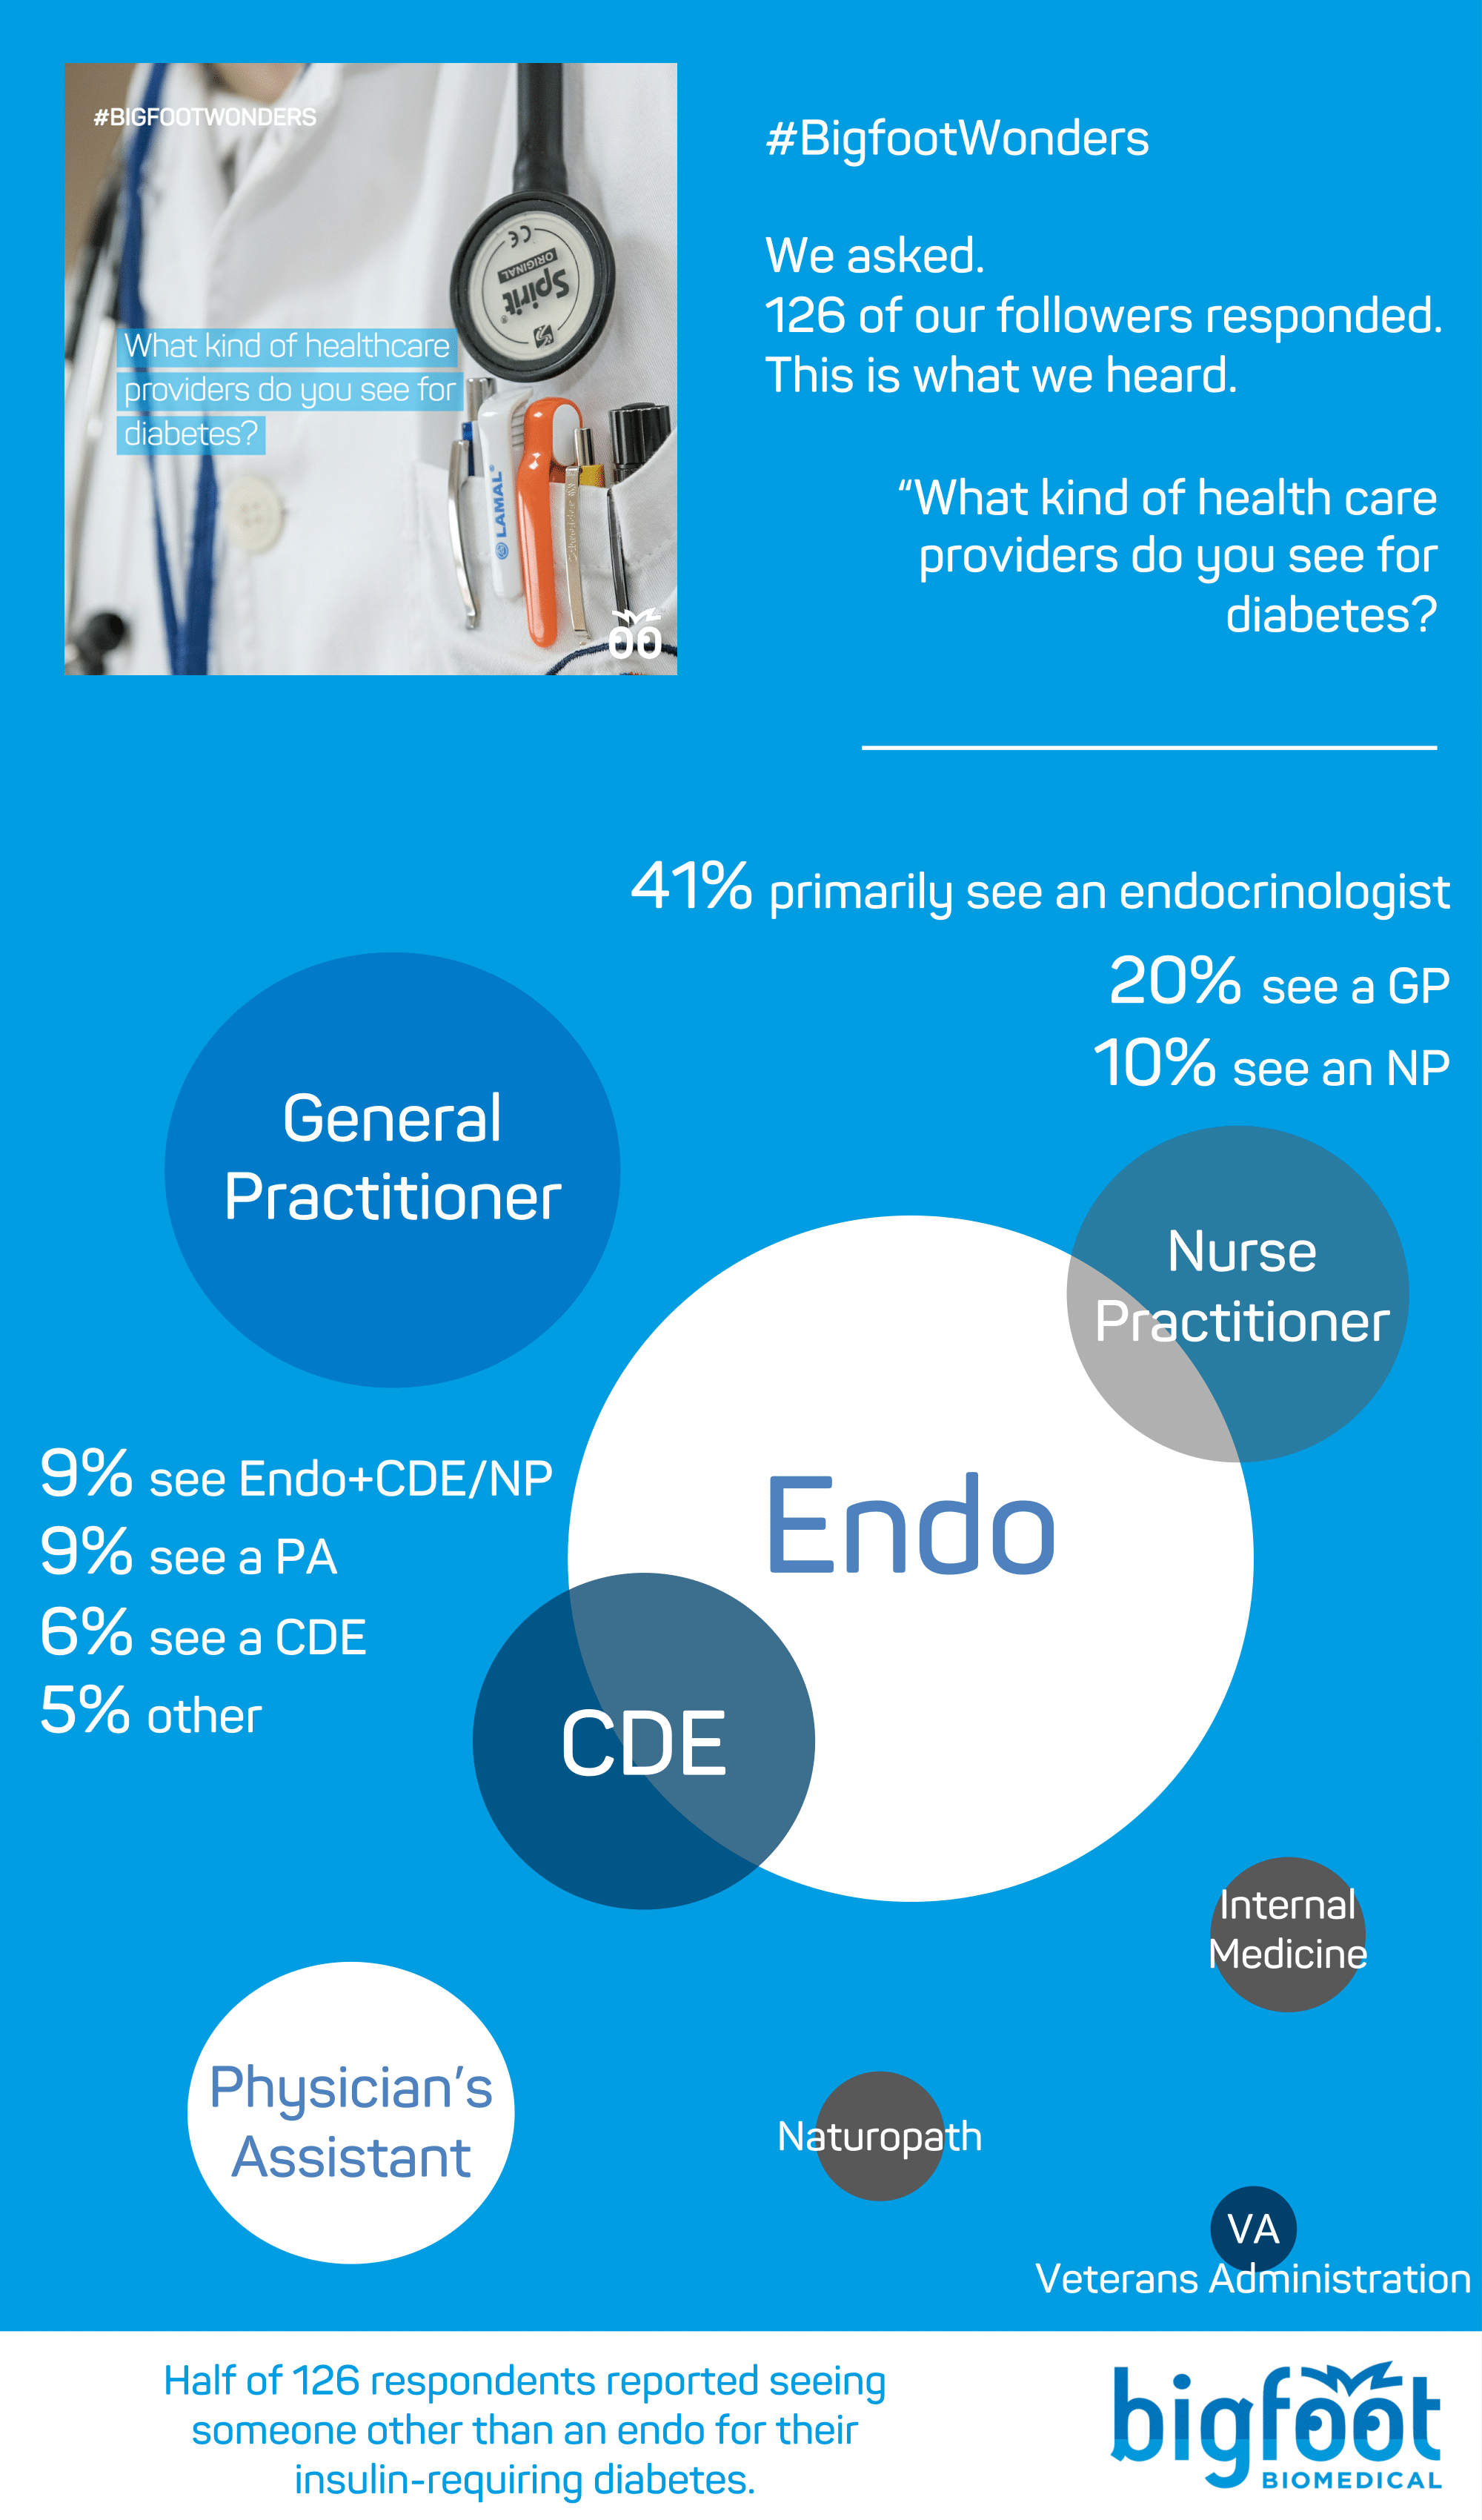 50% said that they see an endo, with 41% saying primarily endo, 6+% saying Endo+CDE, and 2+% saying Endo+NP. 20% of our respondents said they see a GP 10% said only NP 9% said PA 6% said only CDE 1 person mentioned the VA, 3 people mentioned internal medicine, 2 people mentioned that their naturopath writes their insulin Rx